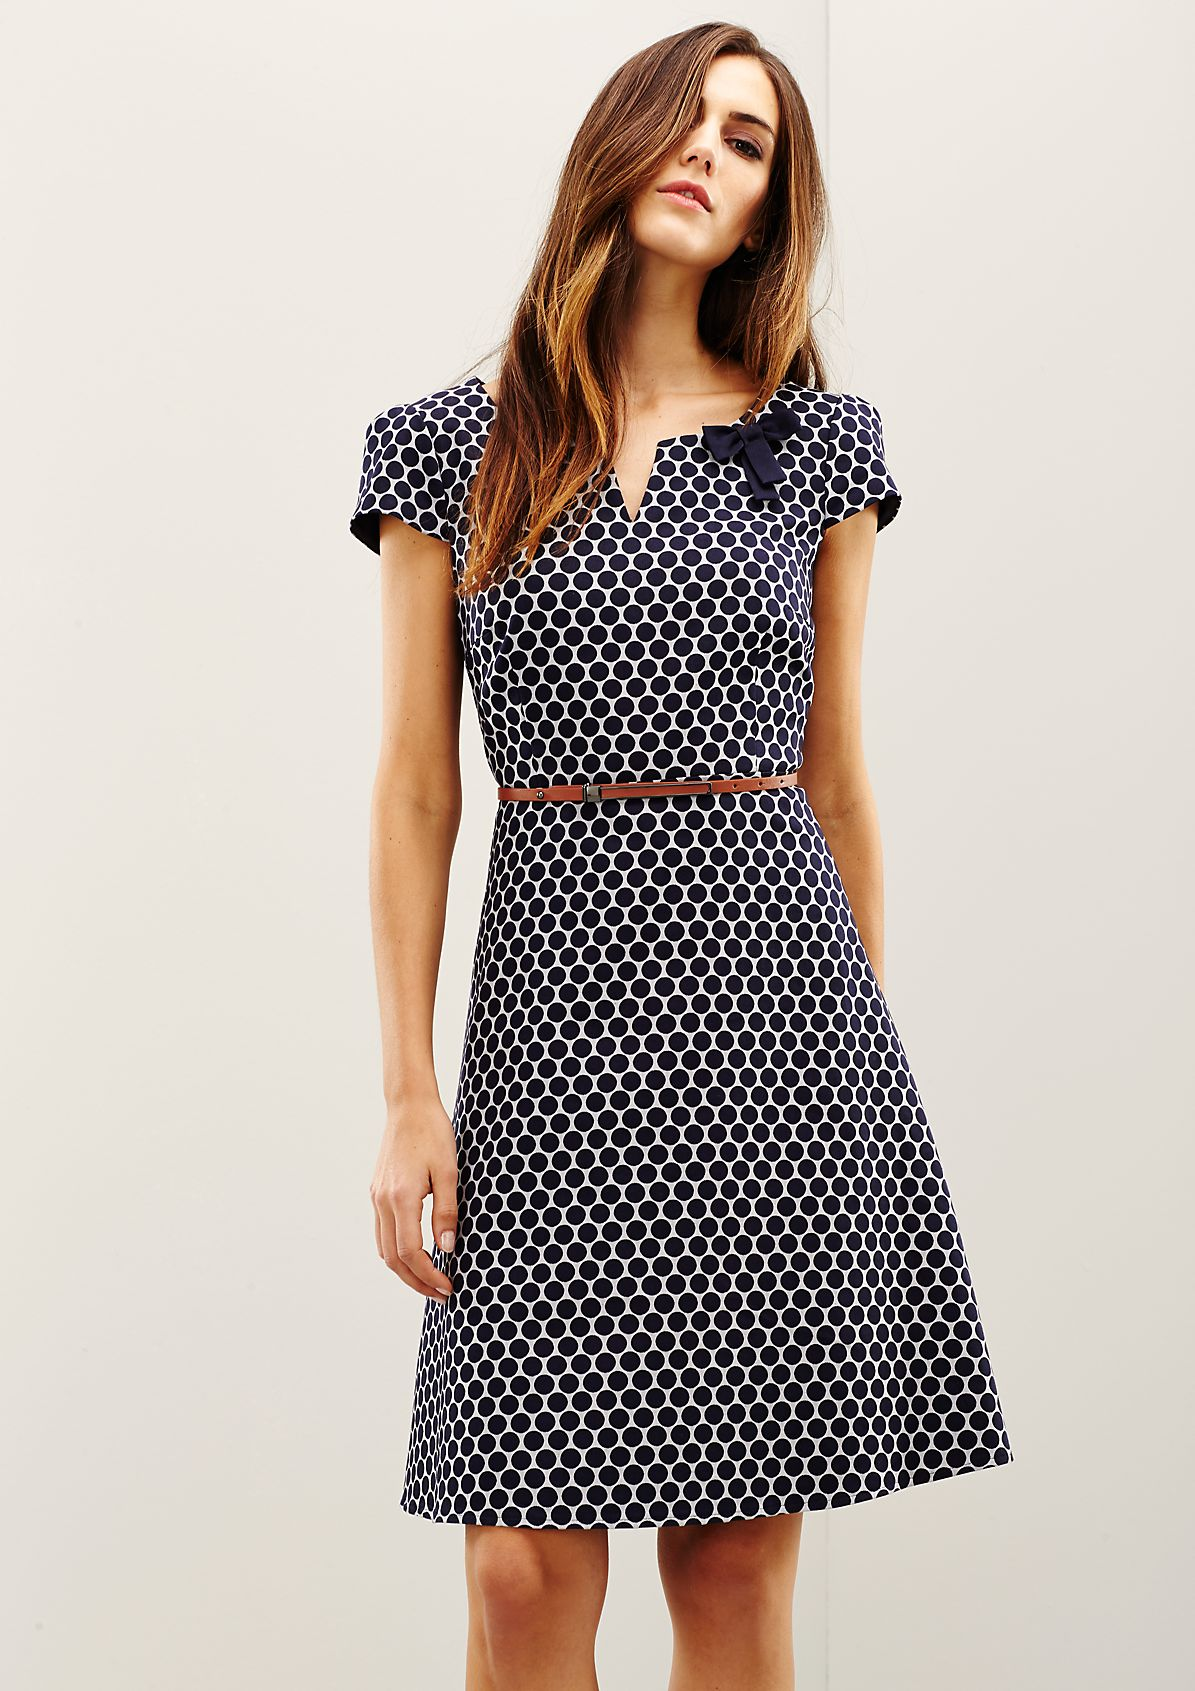 Elegant satin dress with a beautiful all-over minimal pattern from s.Oliver